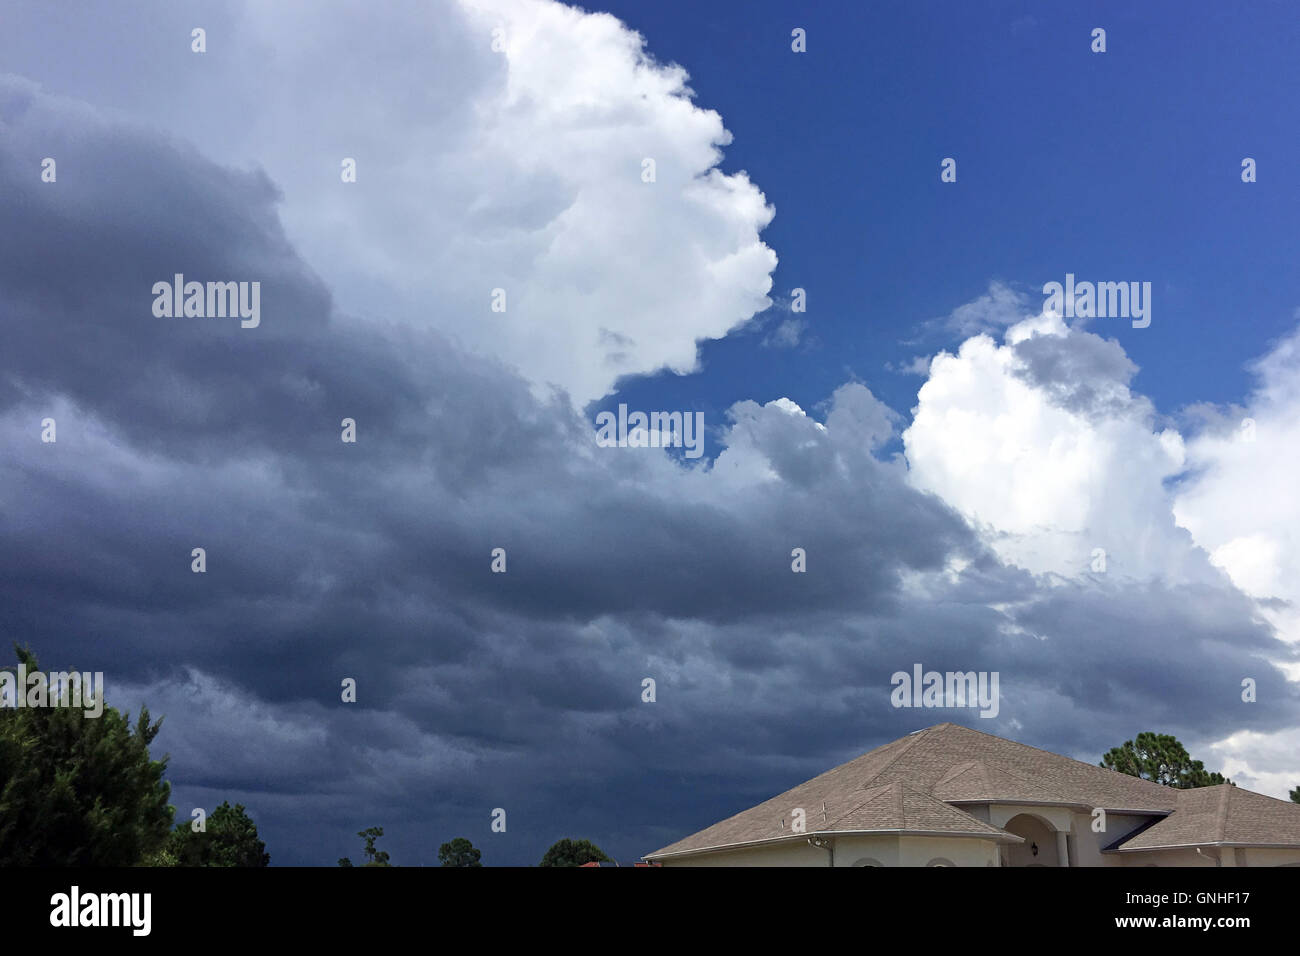 Towering Cumulus cloud over Florida on a July afternoon - Stock Image